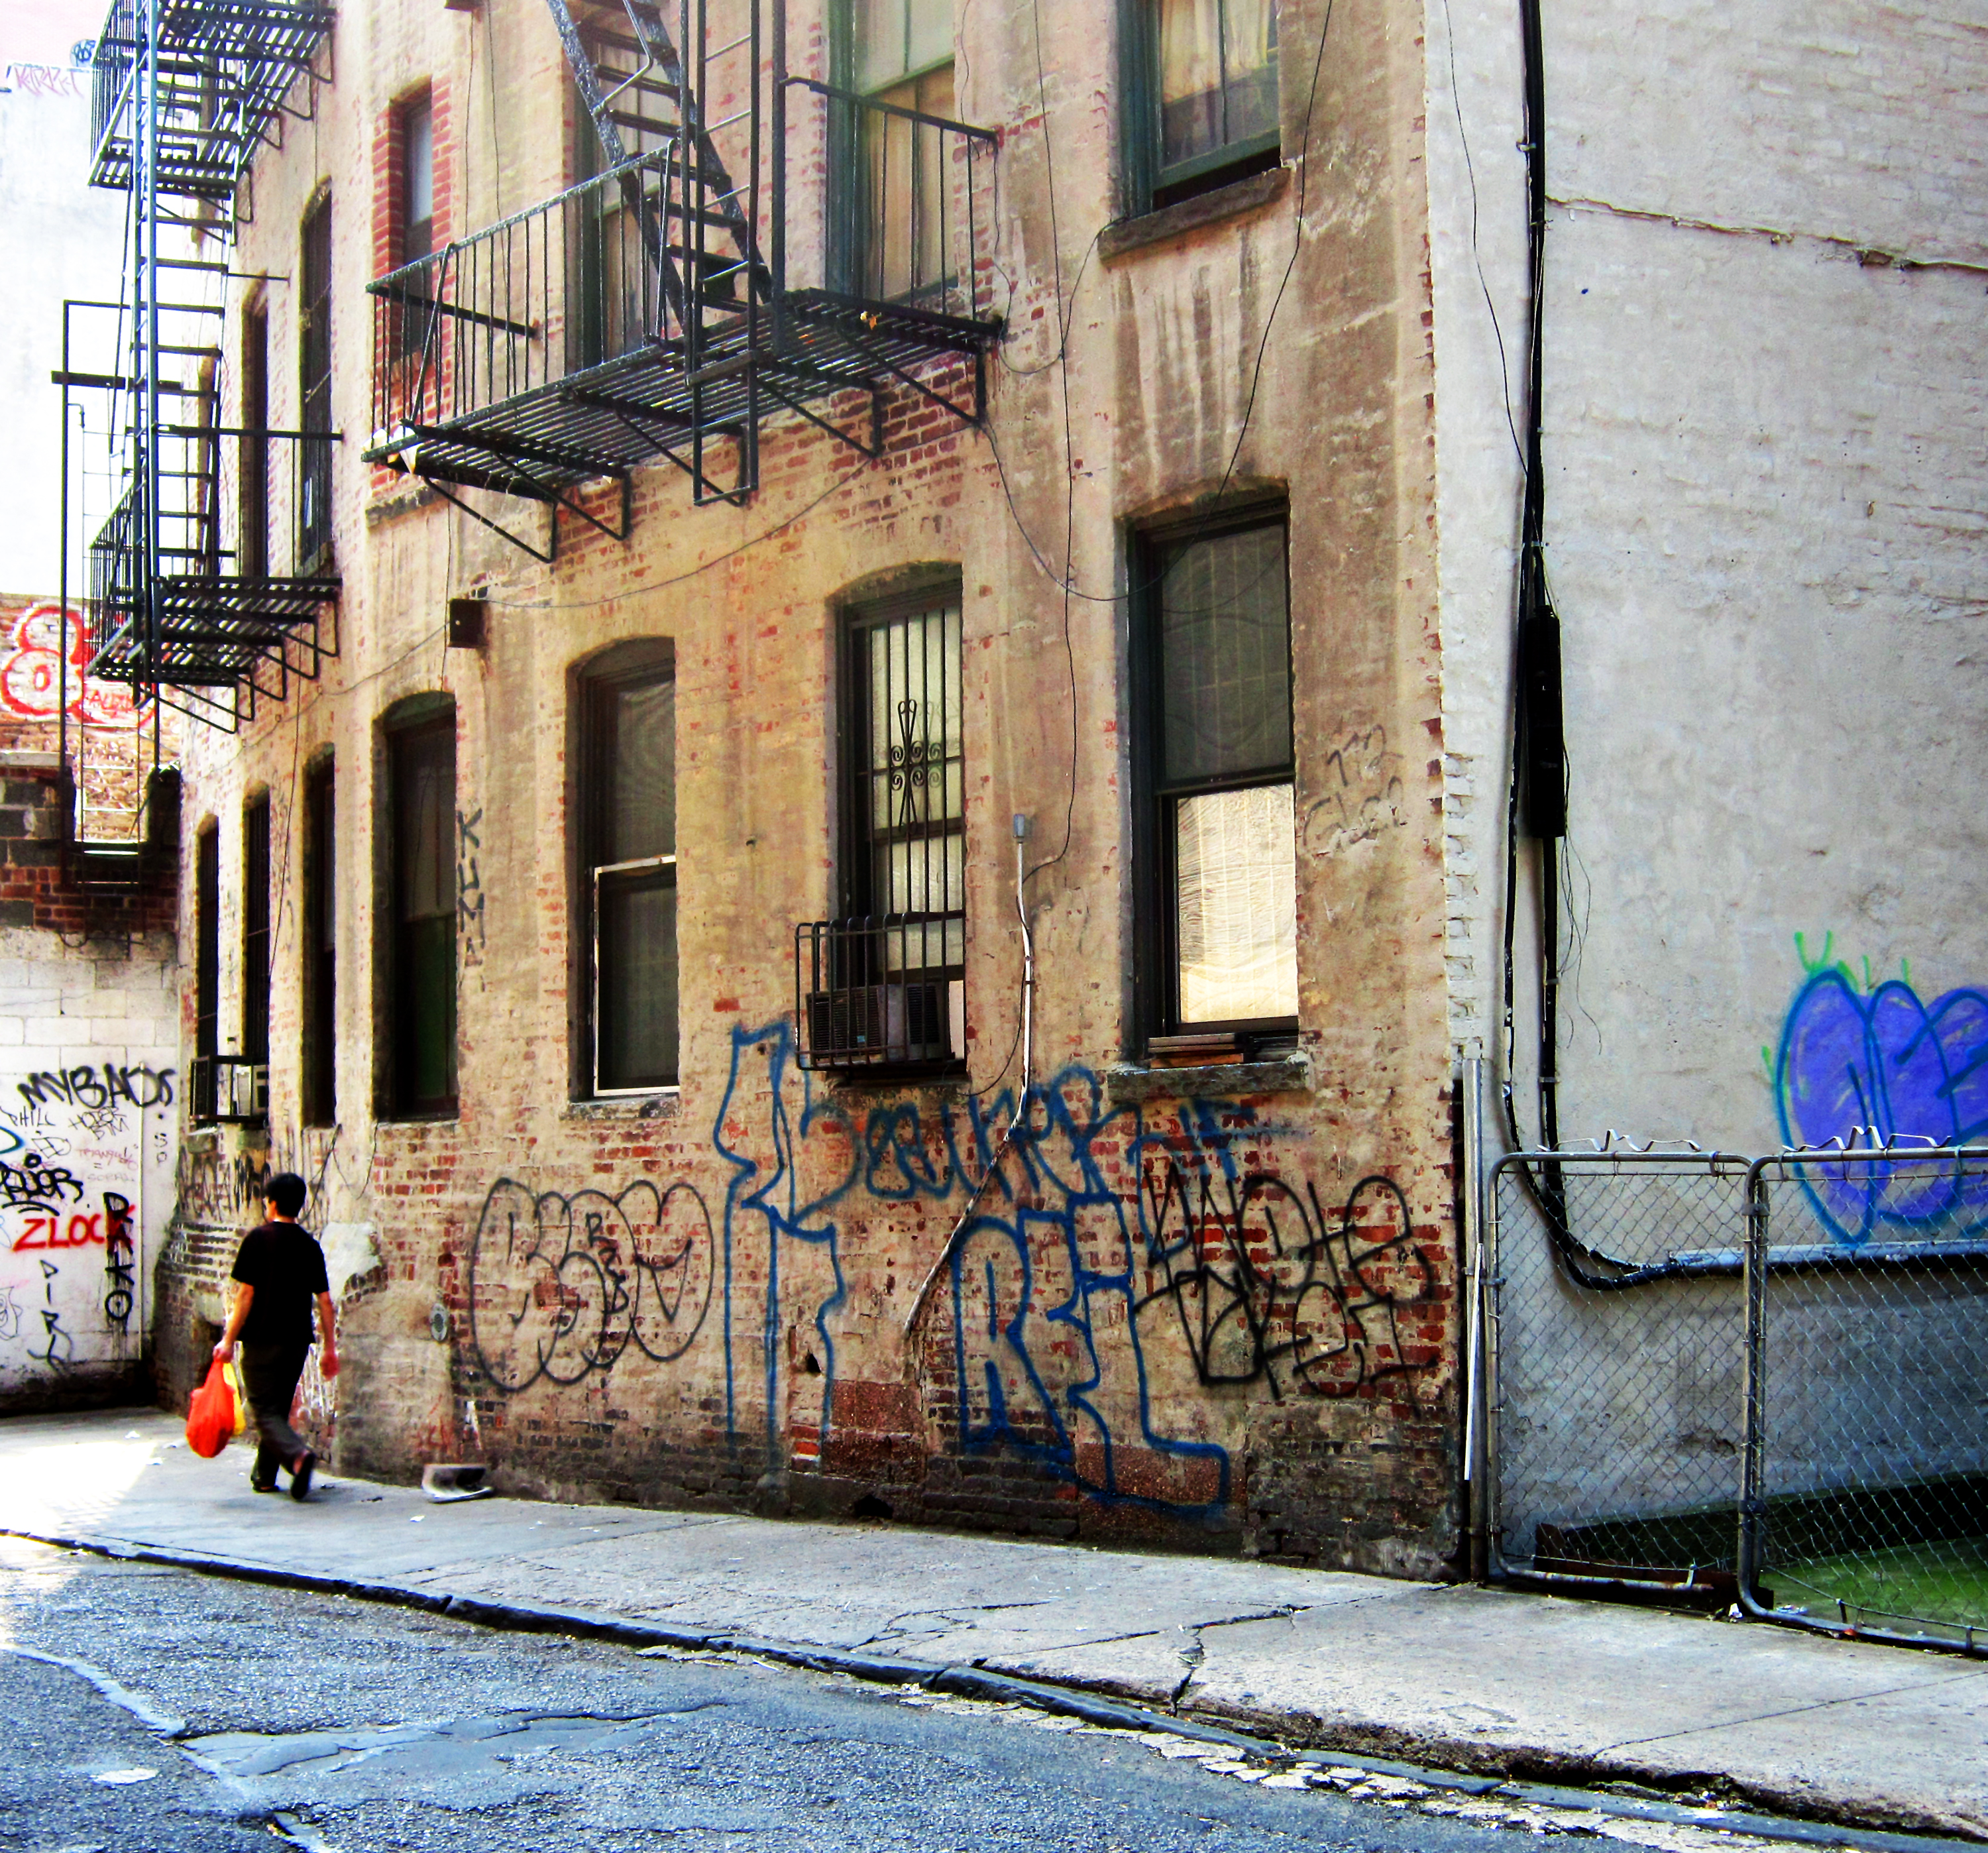 Mechanics Alley